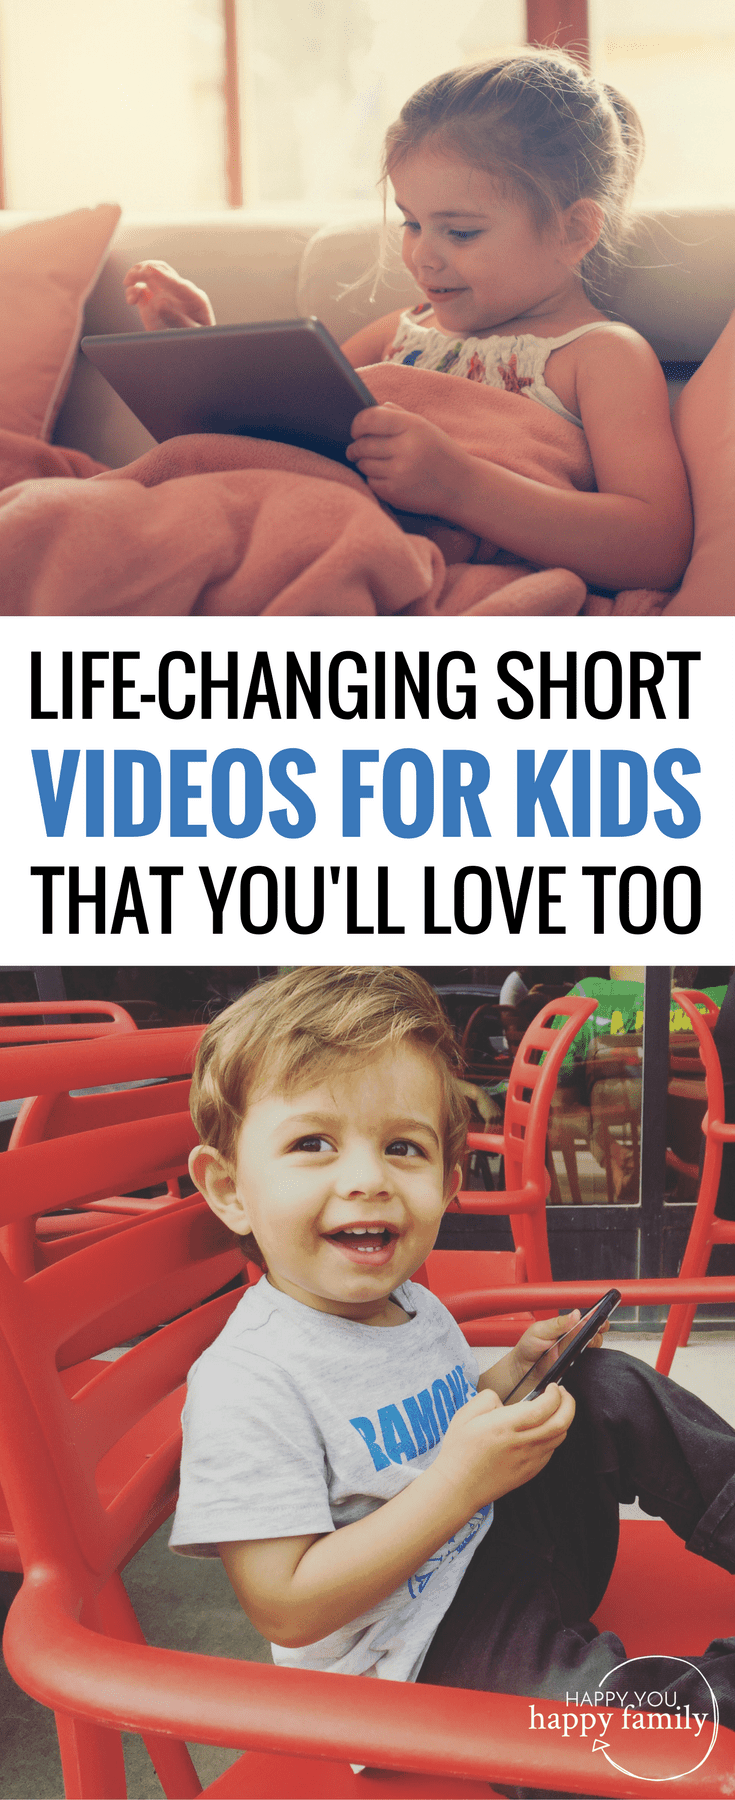 24 Best YouTube Videos For Kids To Change How They See The